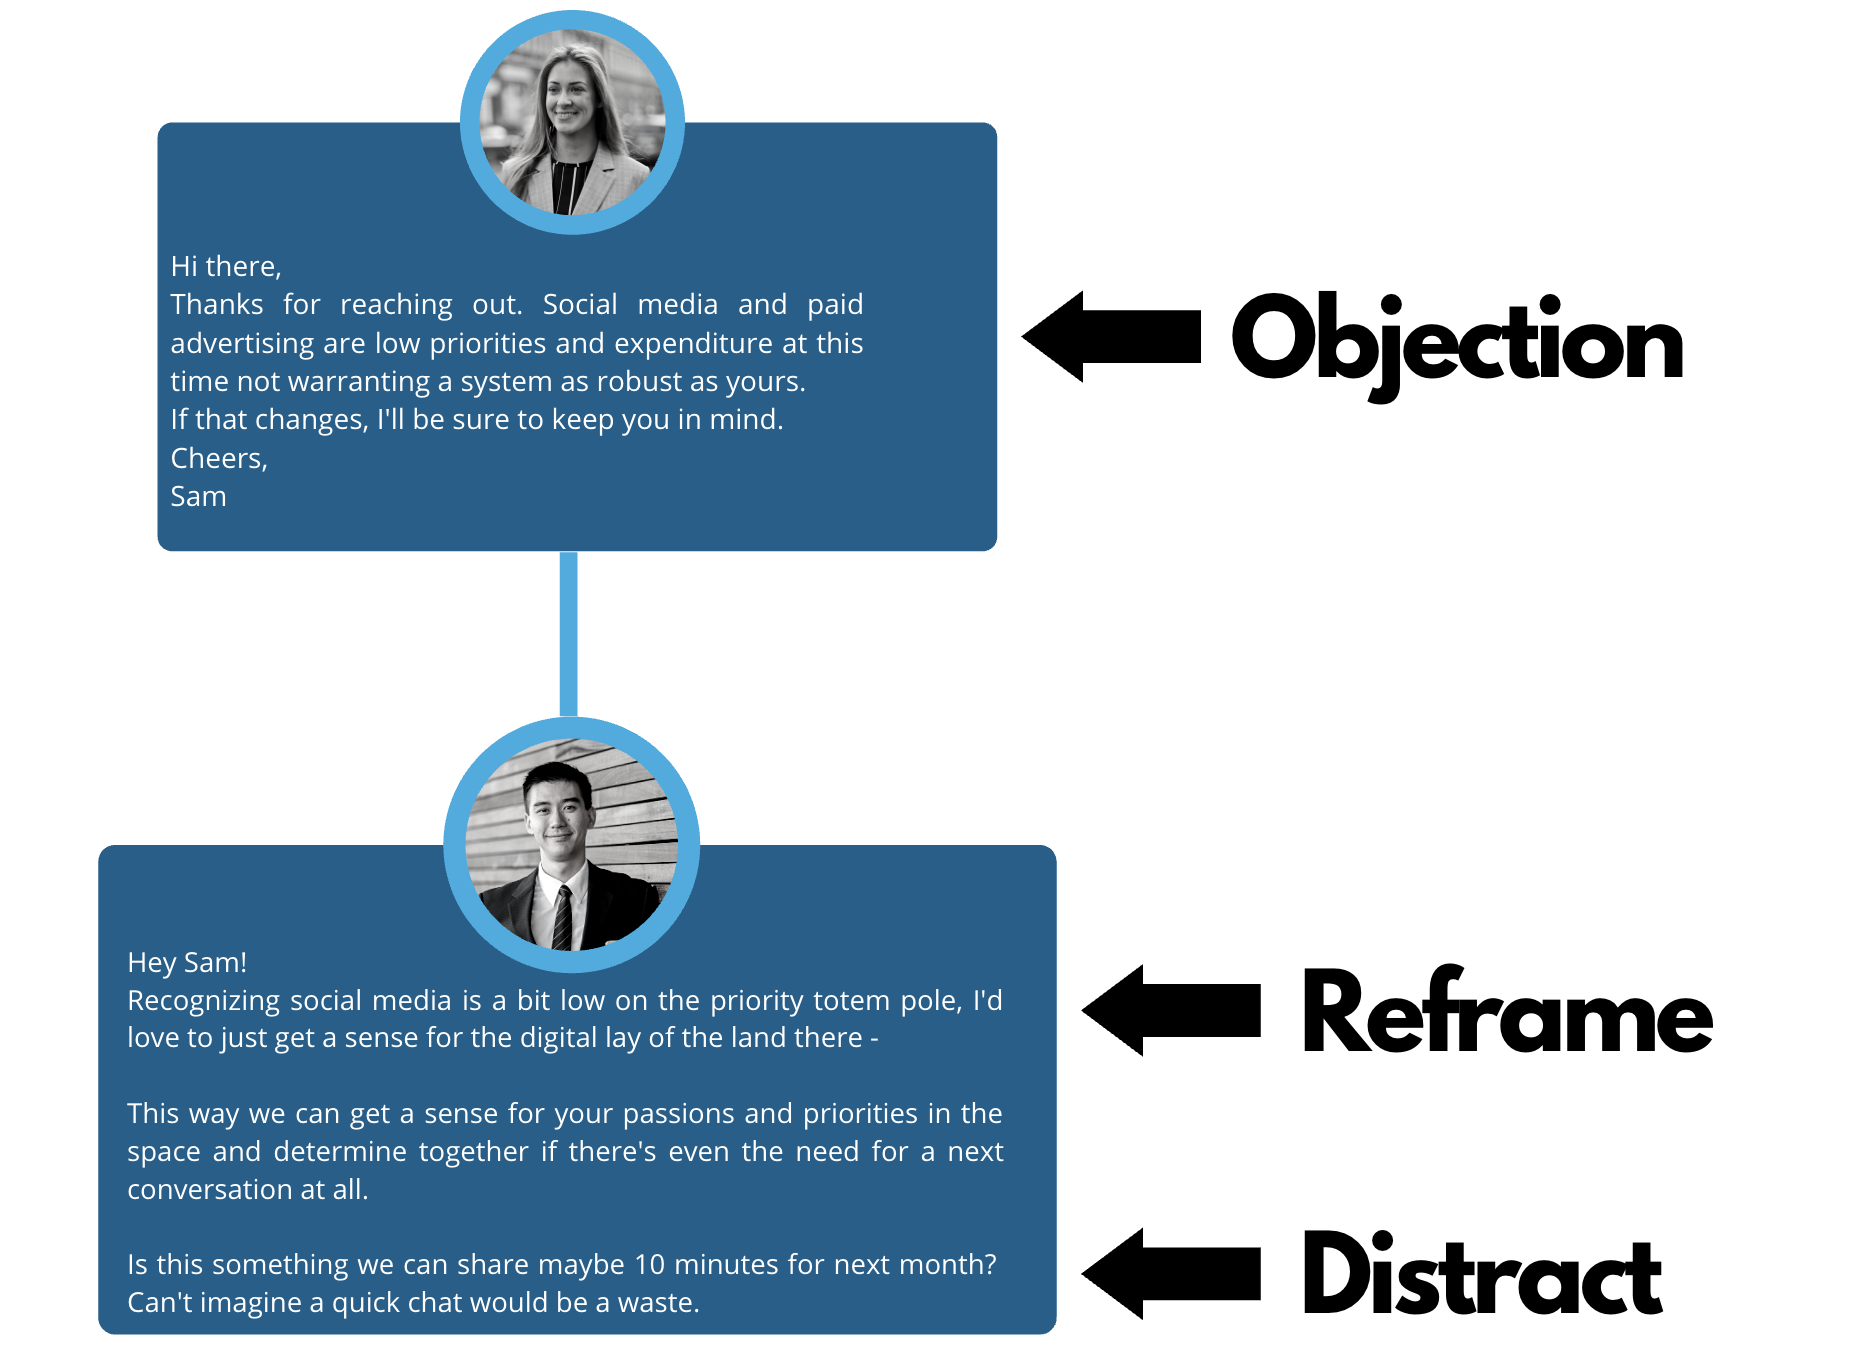 overcoming sales objections: objection, reframe, distract